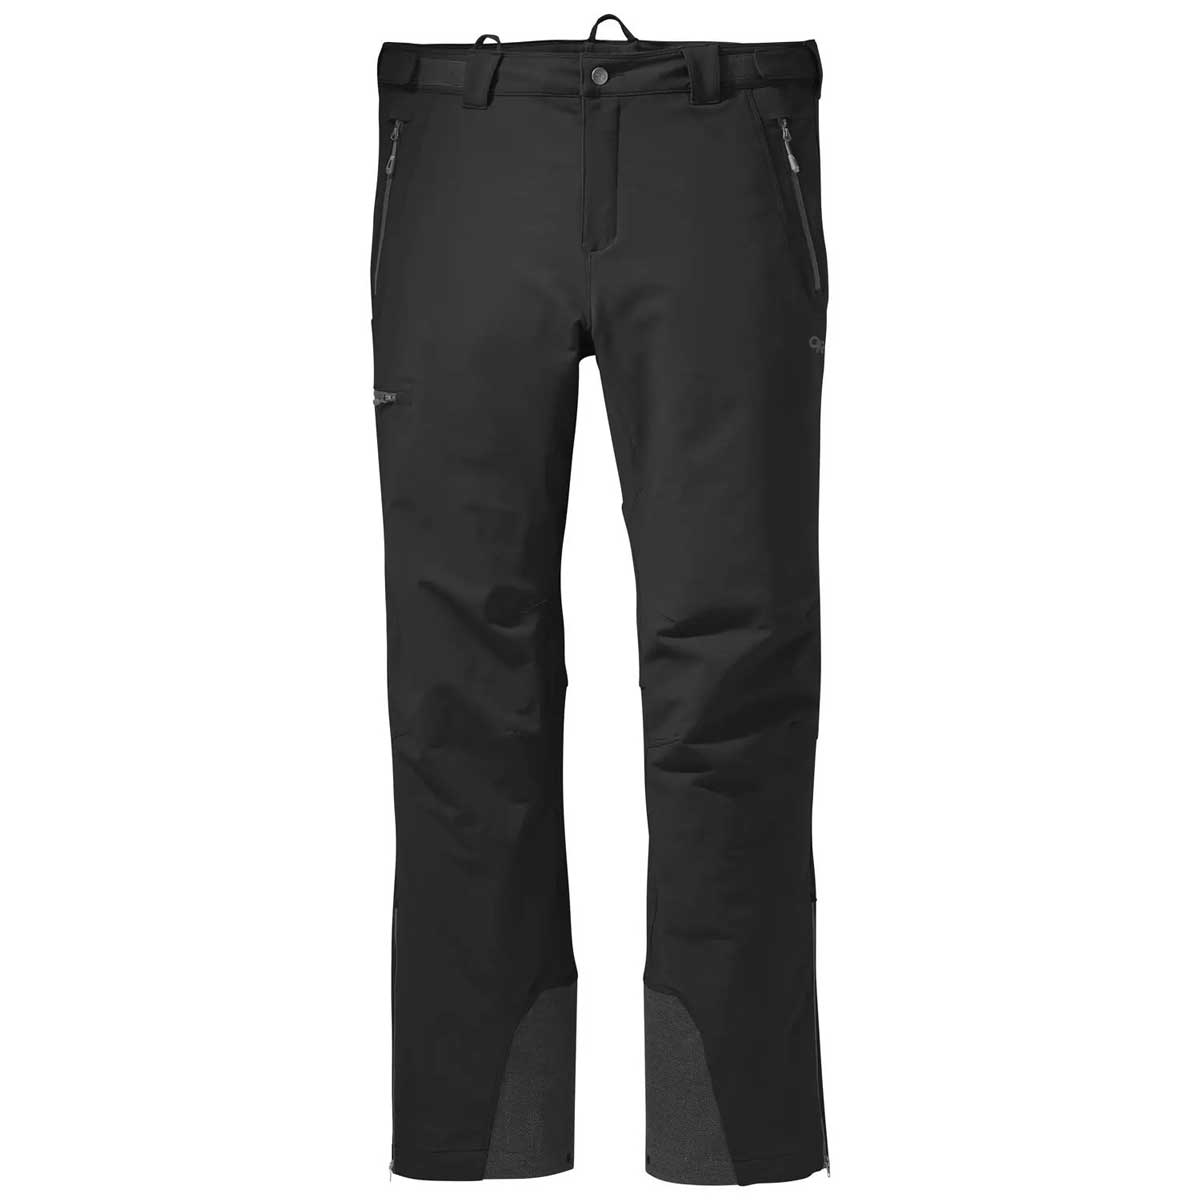 Outdoor Research Cirque II Men's Pants in Black